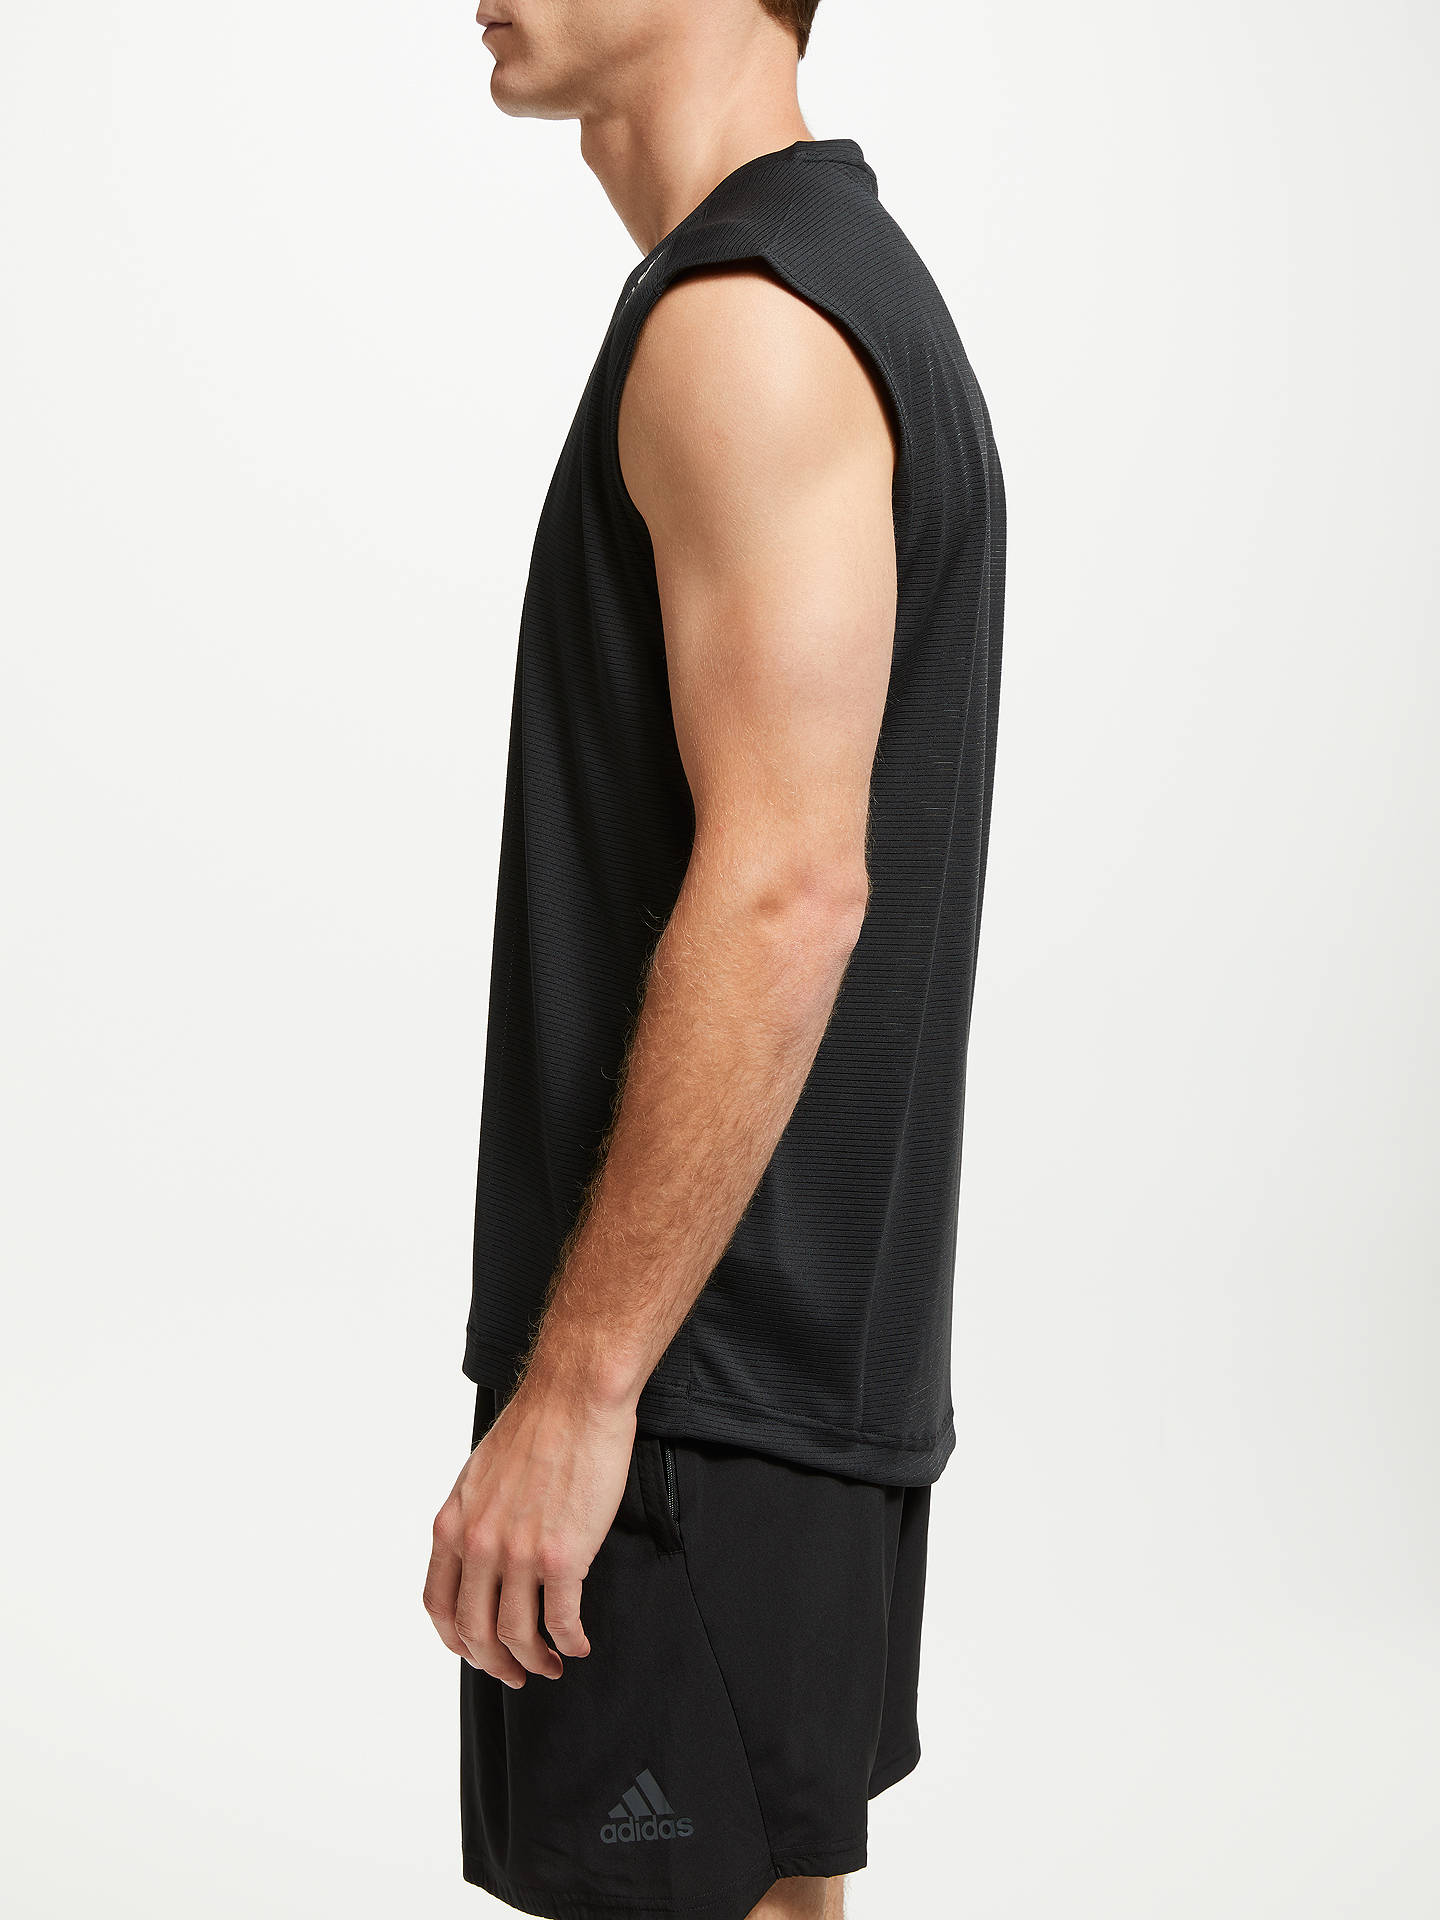 Buy adidas Climacool Training Tank Top, Black, S Online at johnlewis.com